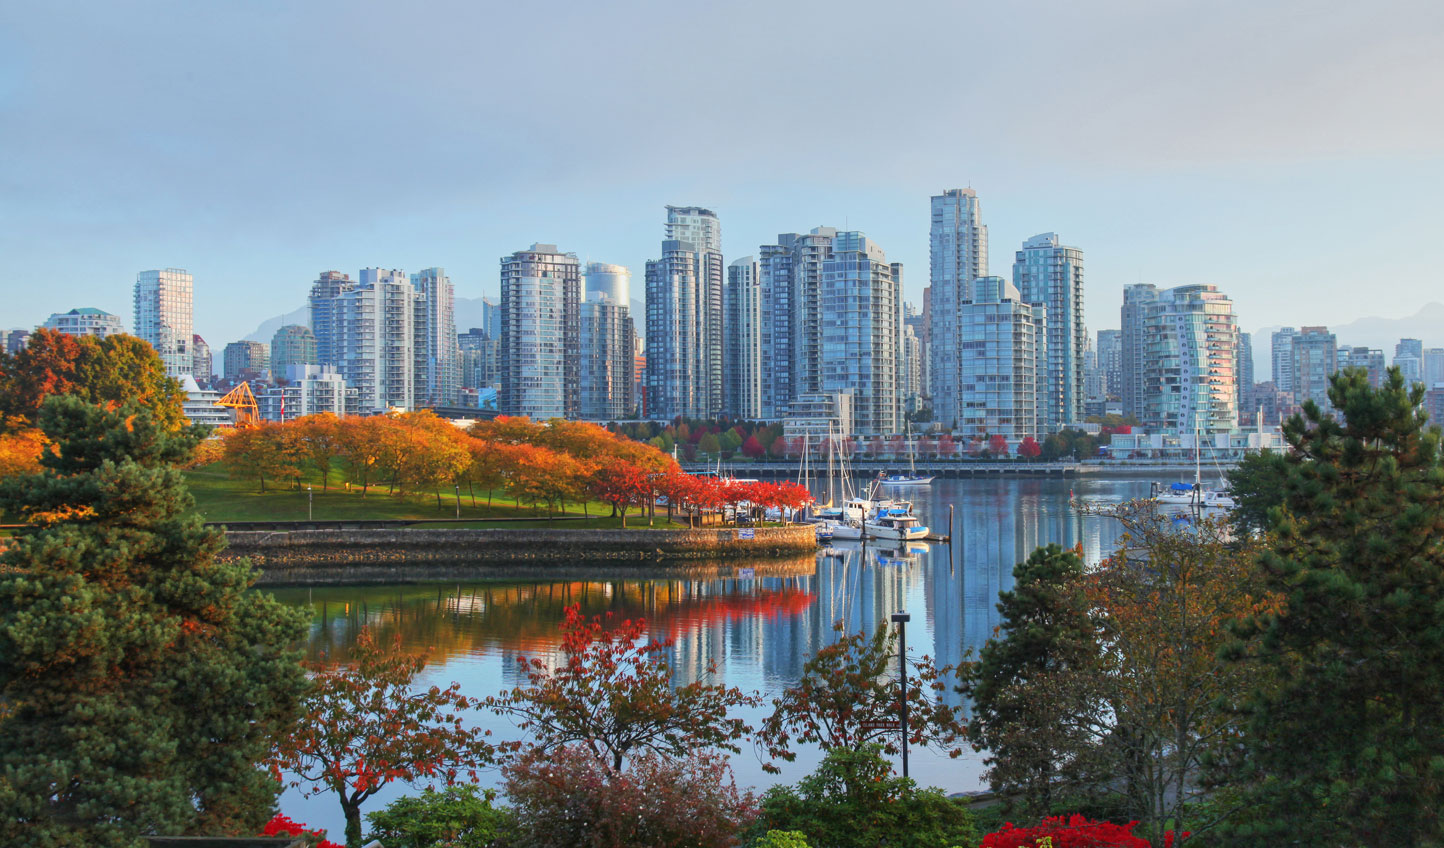 Vancouver - where city meets natural beauty